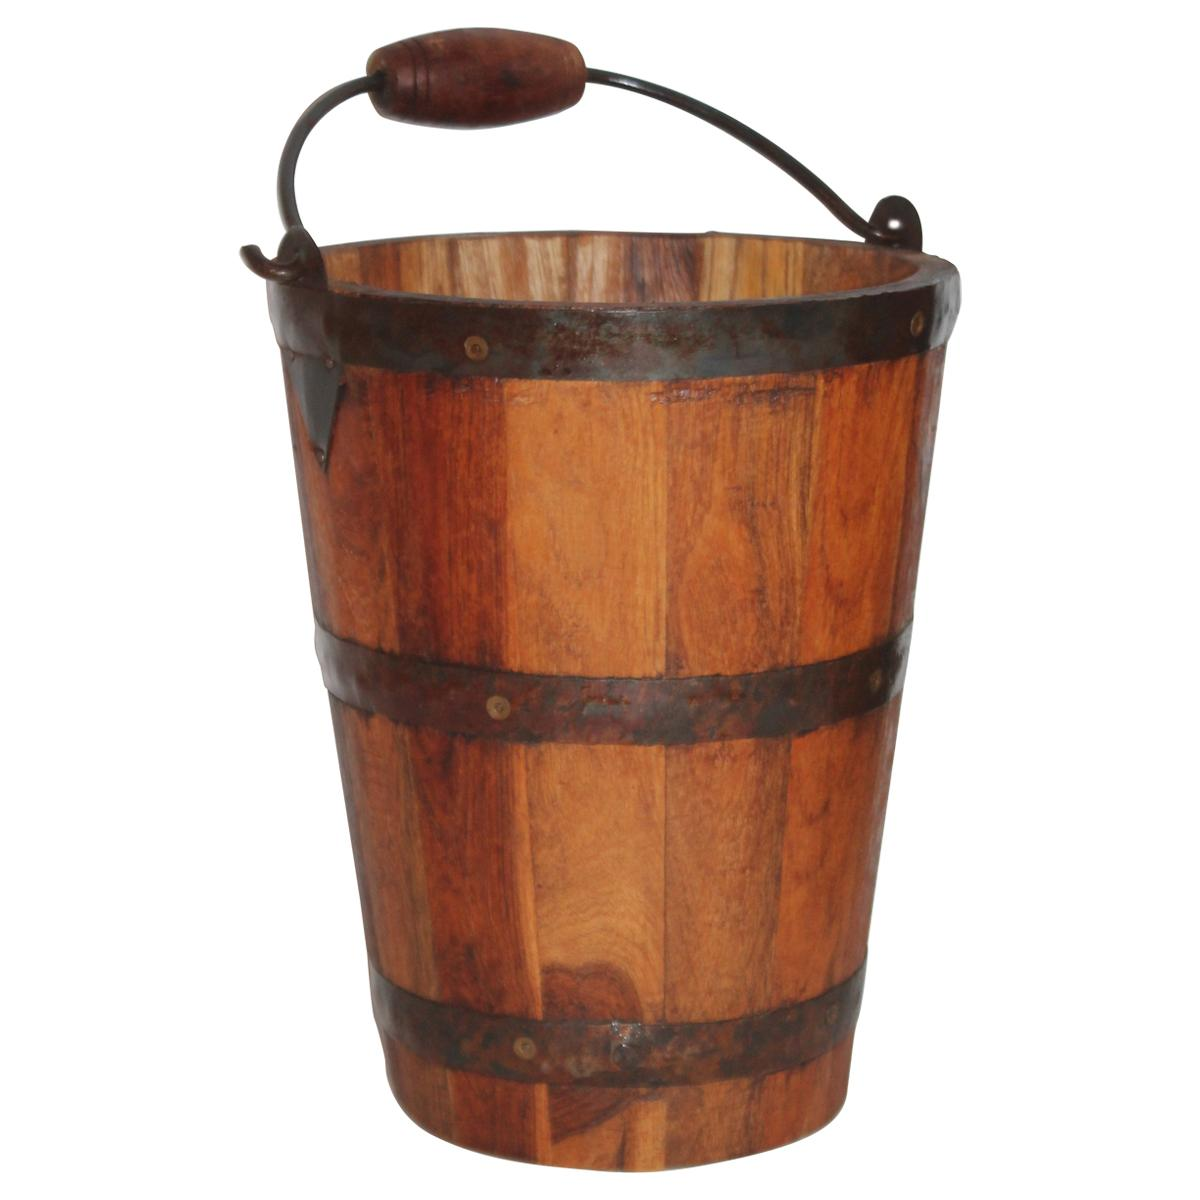 Early 20th Century Handcrafted Bucket from New England